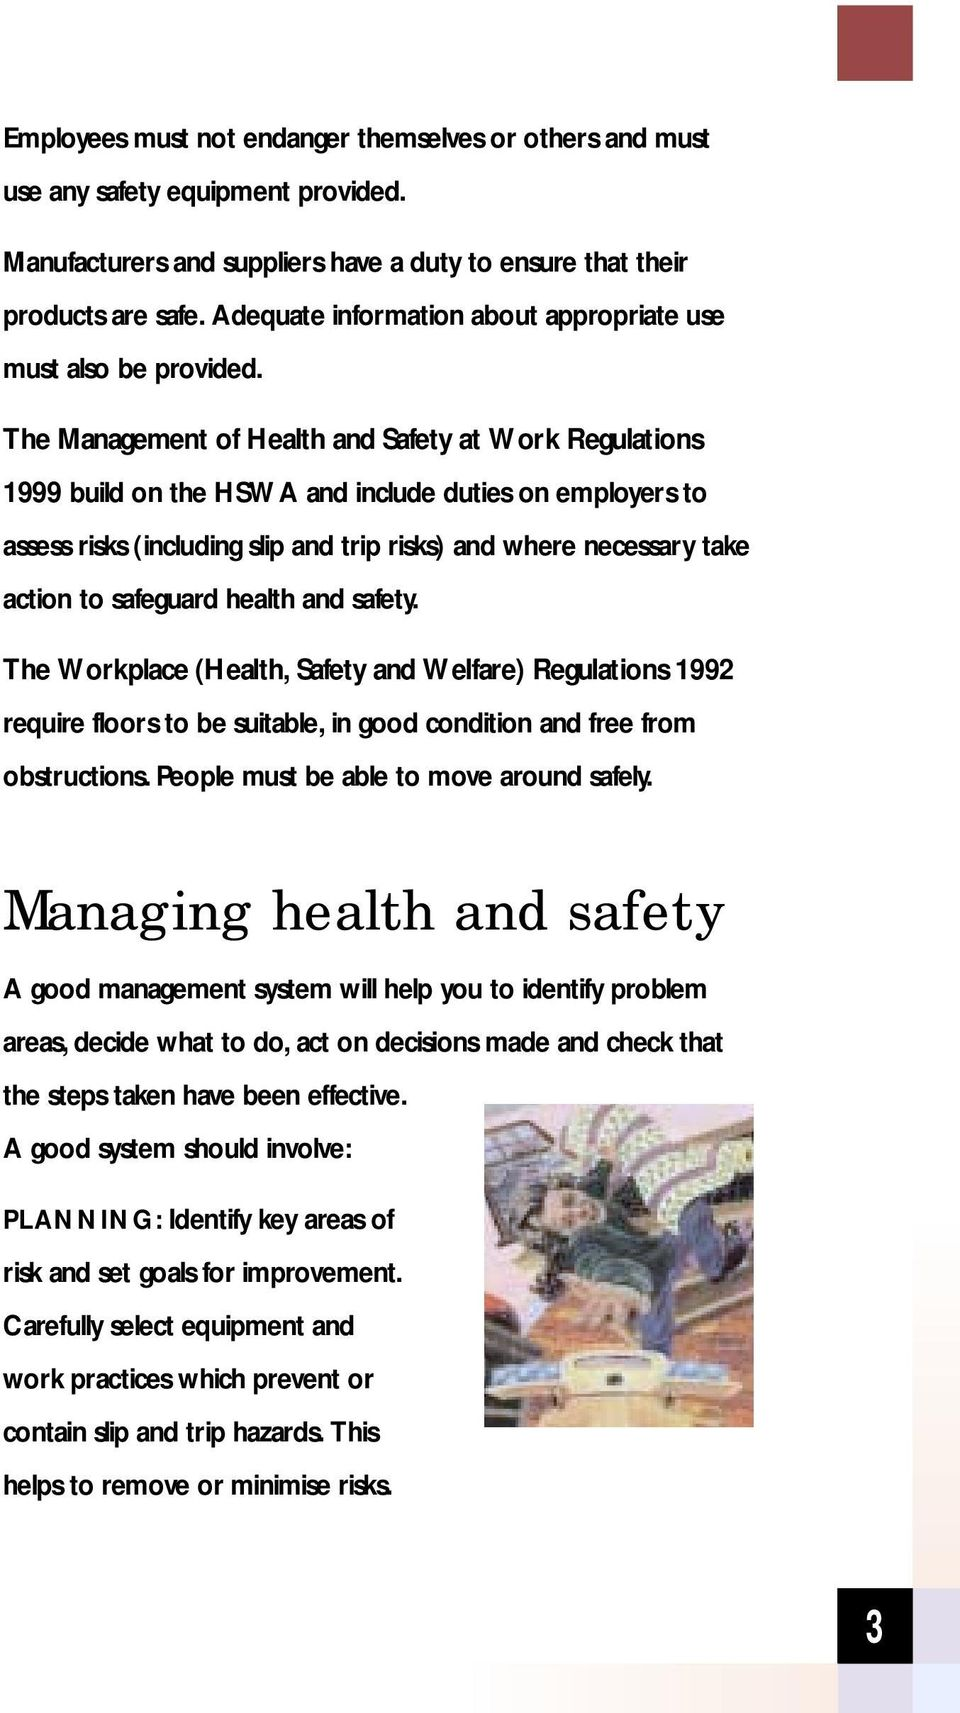 The Management of Health and Safety at Work Regulations 1999 build on the HSWA and include duties on employers to assess risks (including slip and trip risks) and where necessary take action to